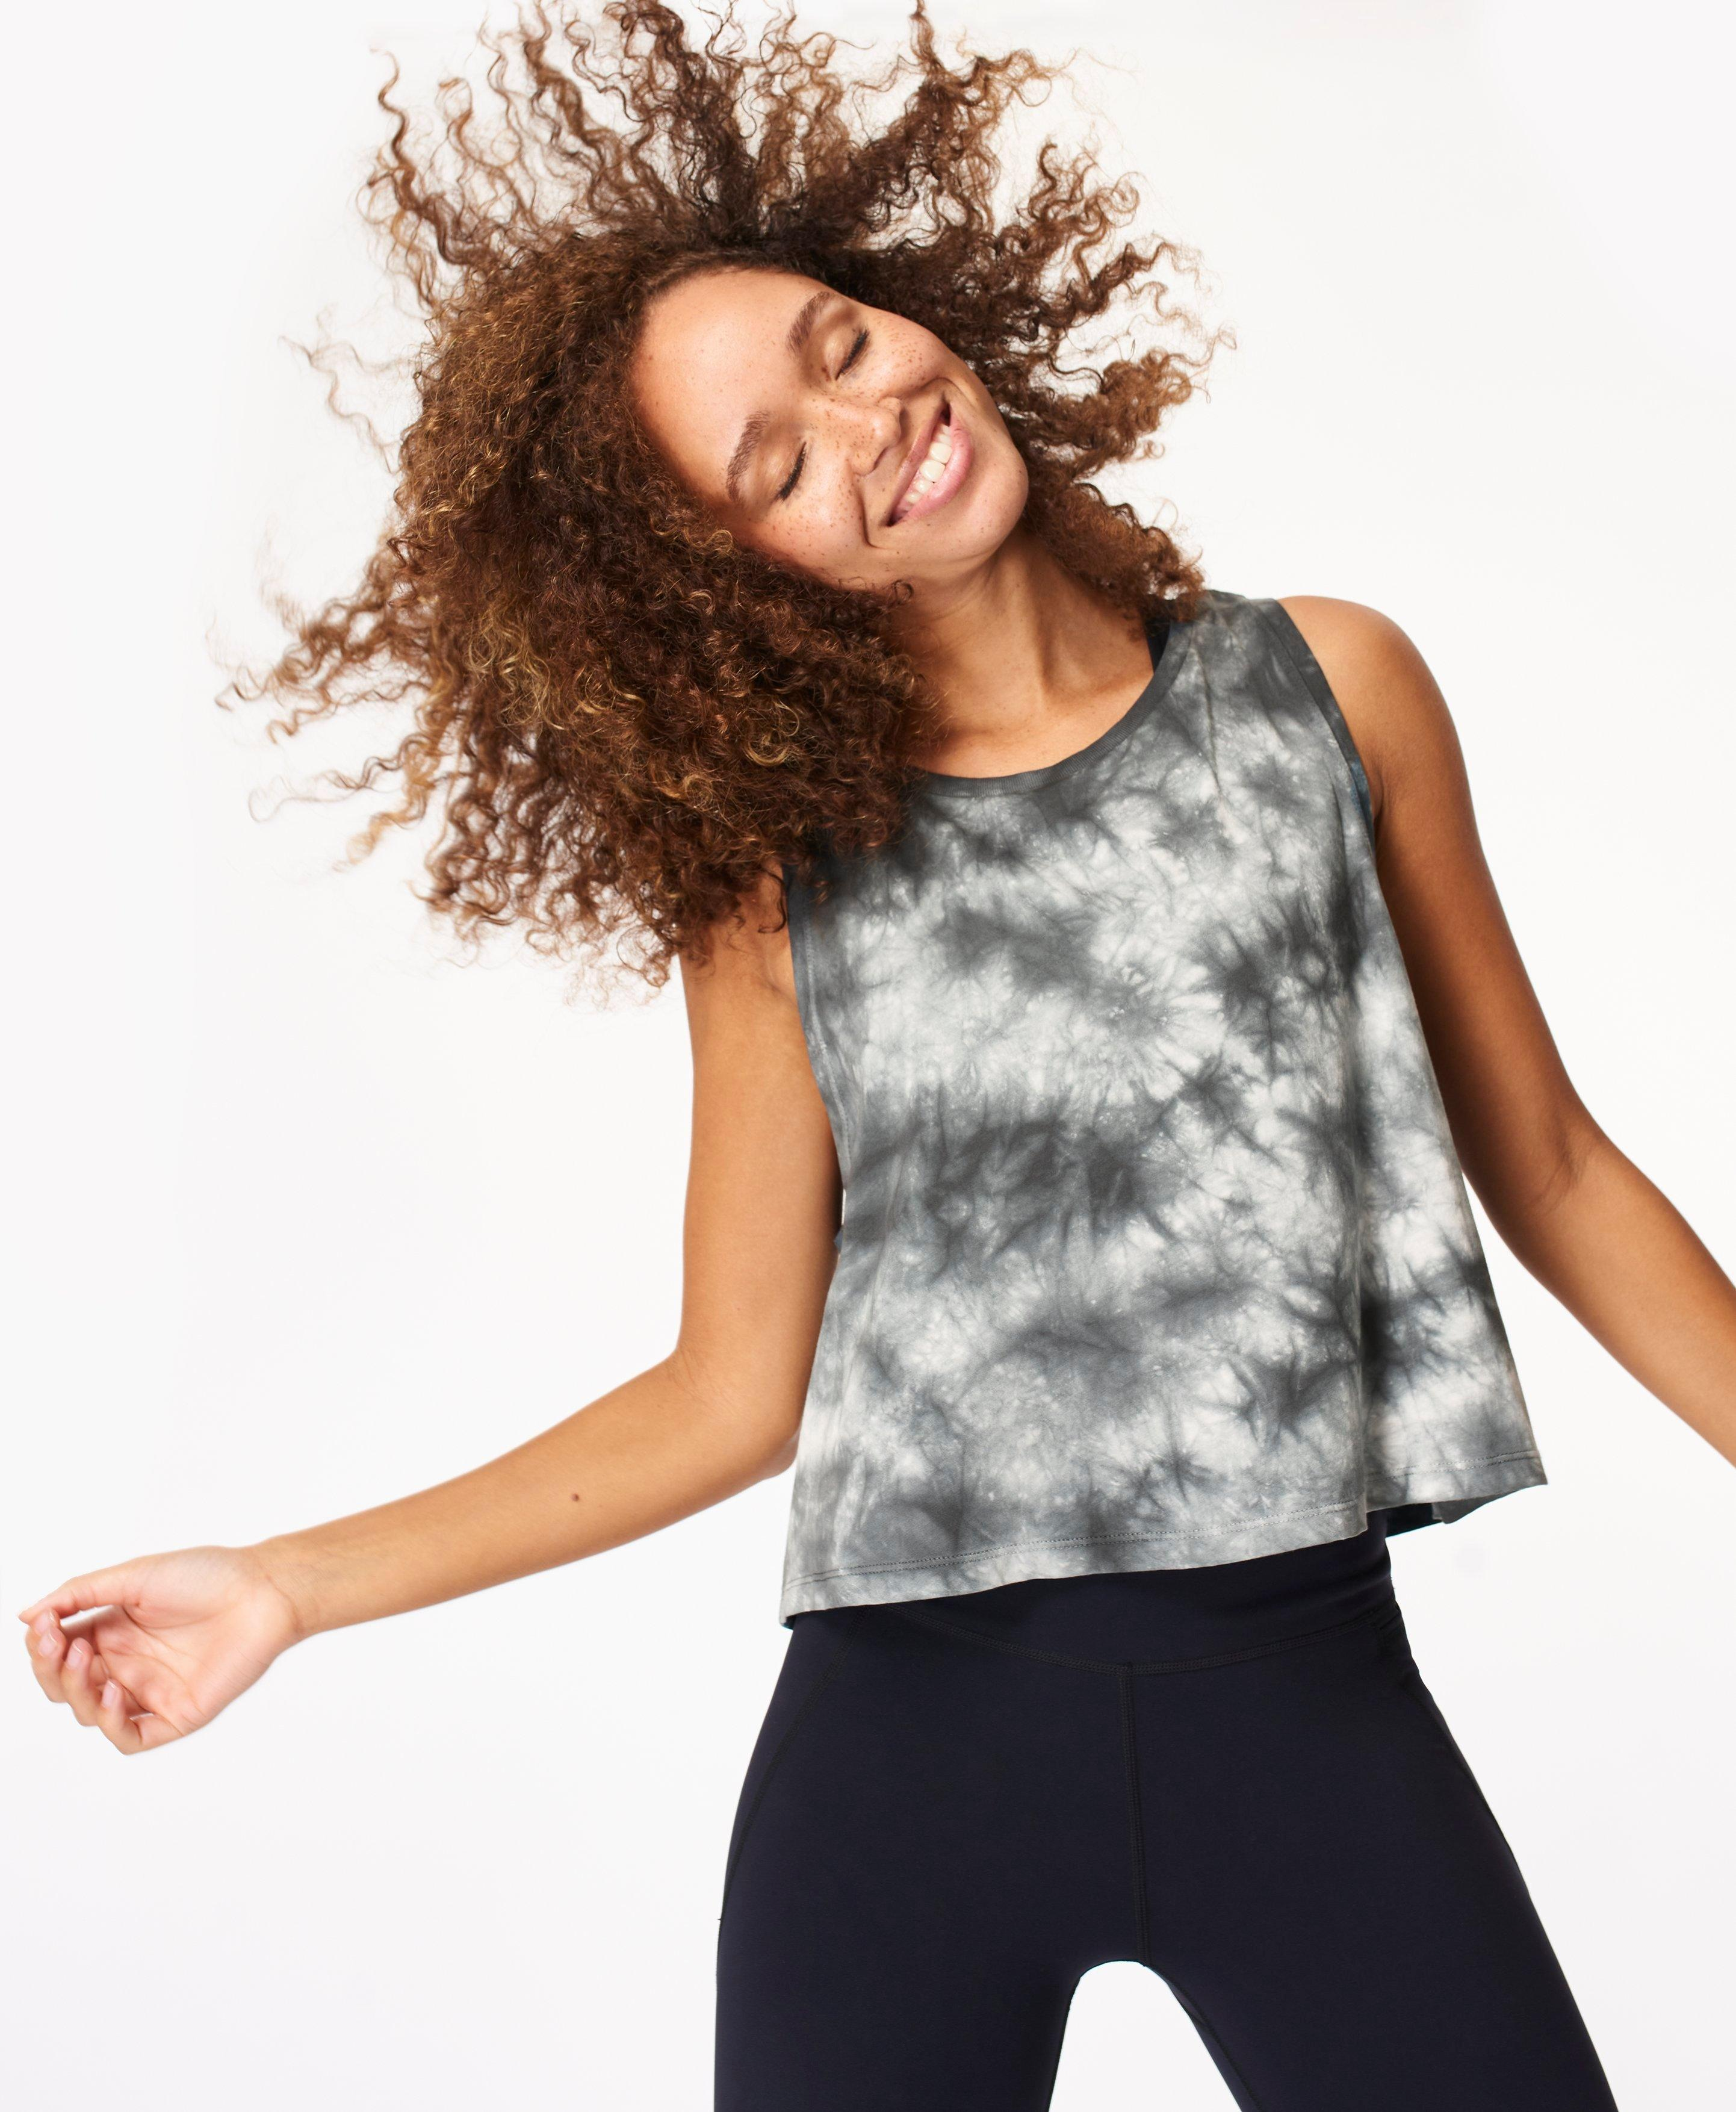 Lightweight workout tank in all-over tie dye print. Breathable, super soft and with dropped armholes, it falls to the top of your hips. Wear for any workout.